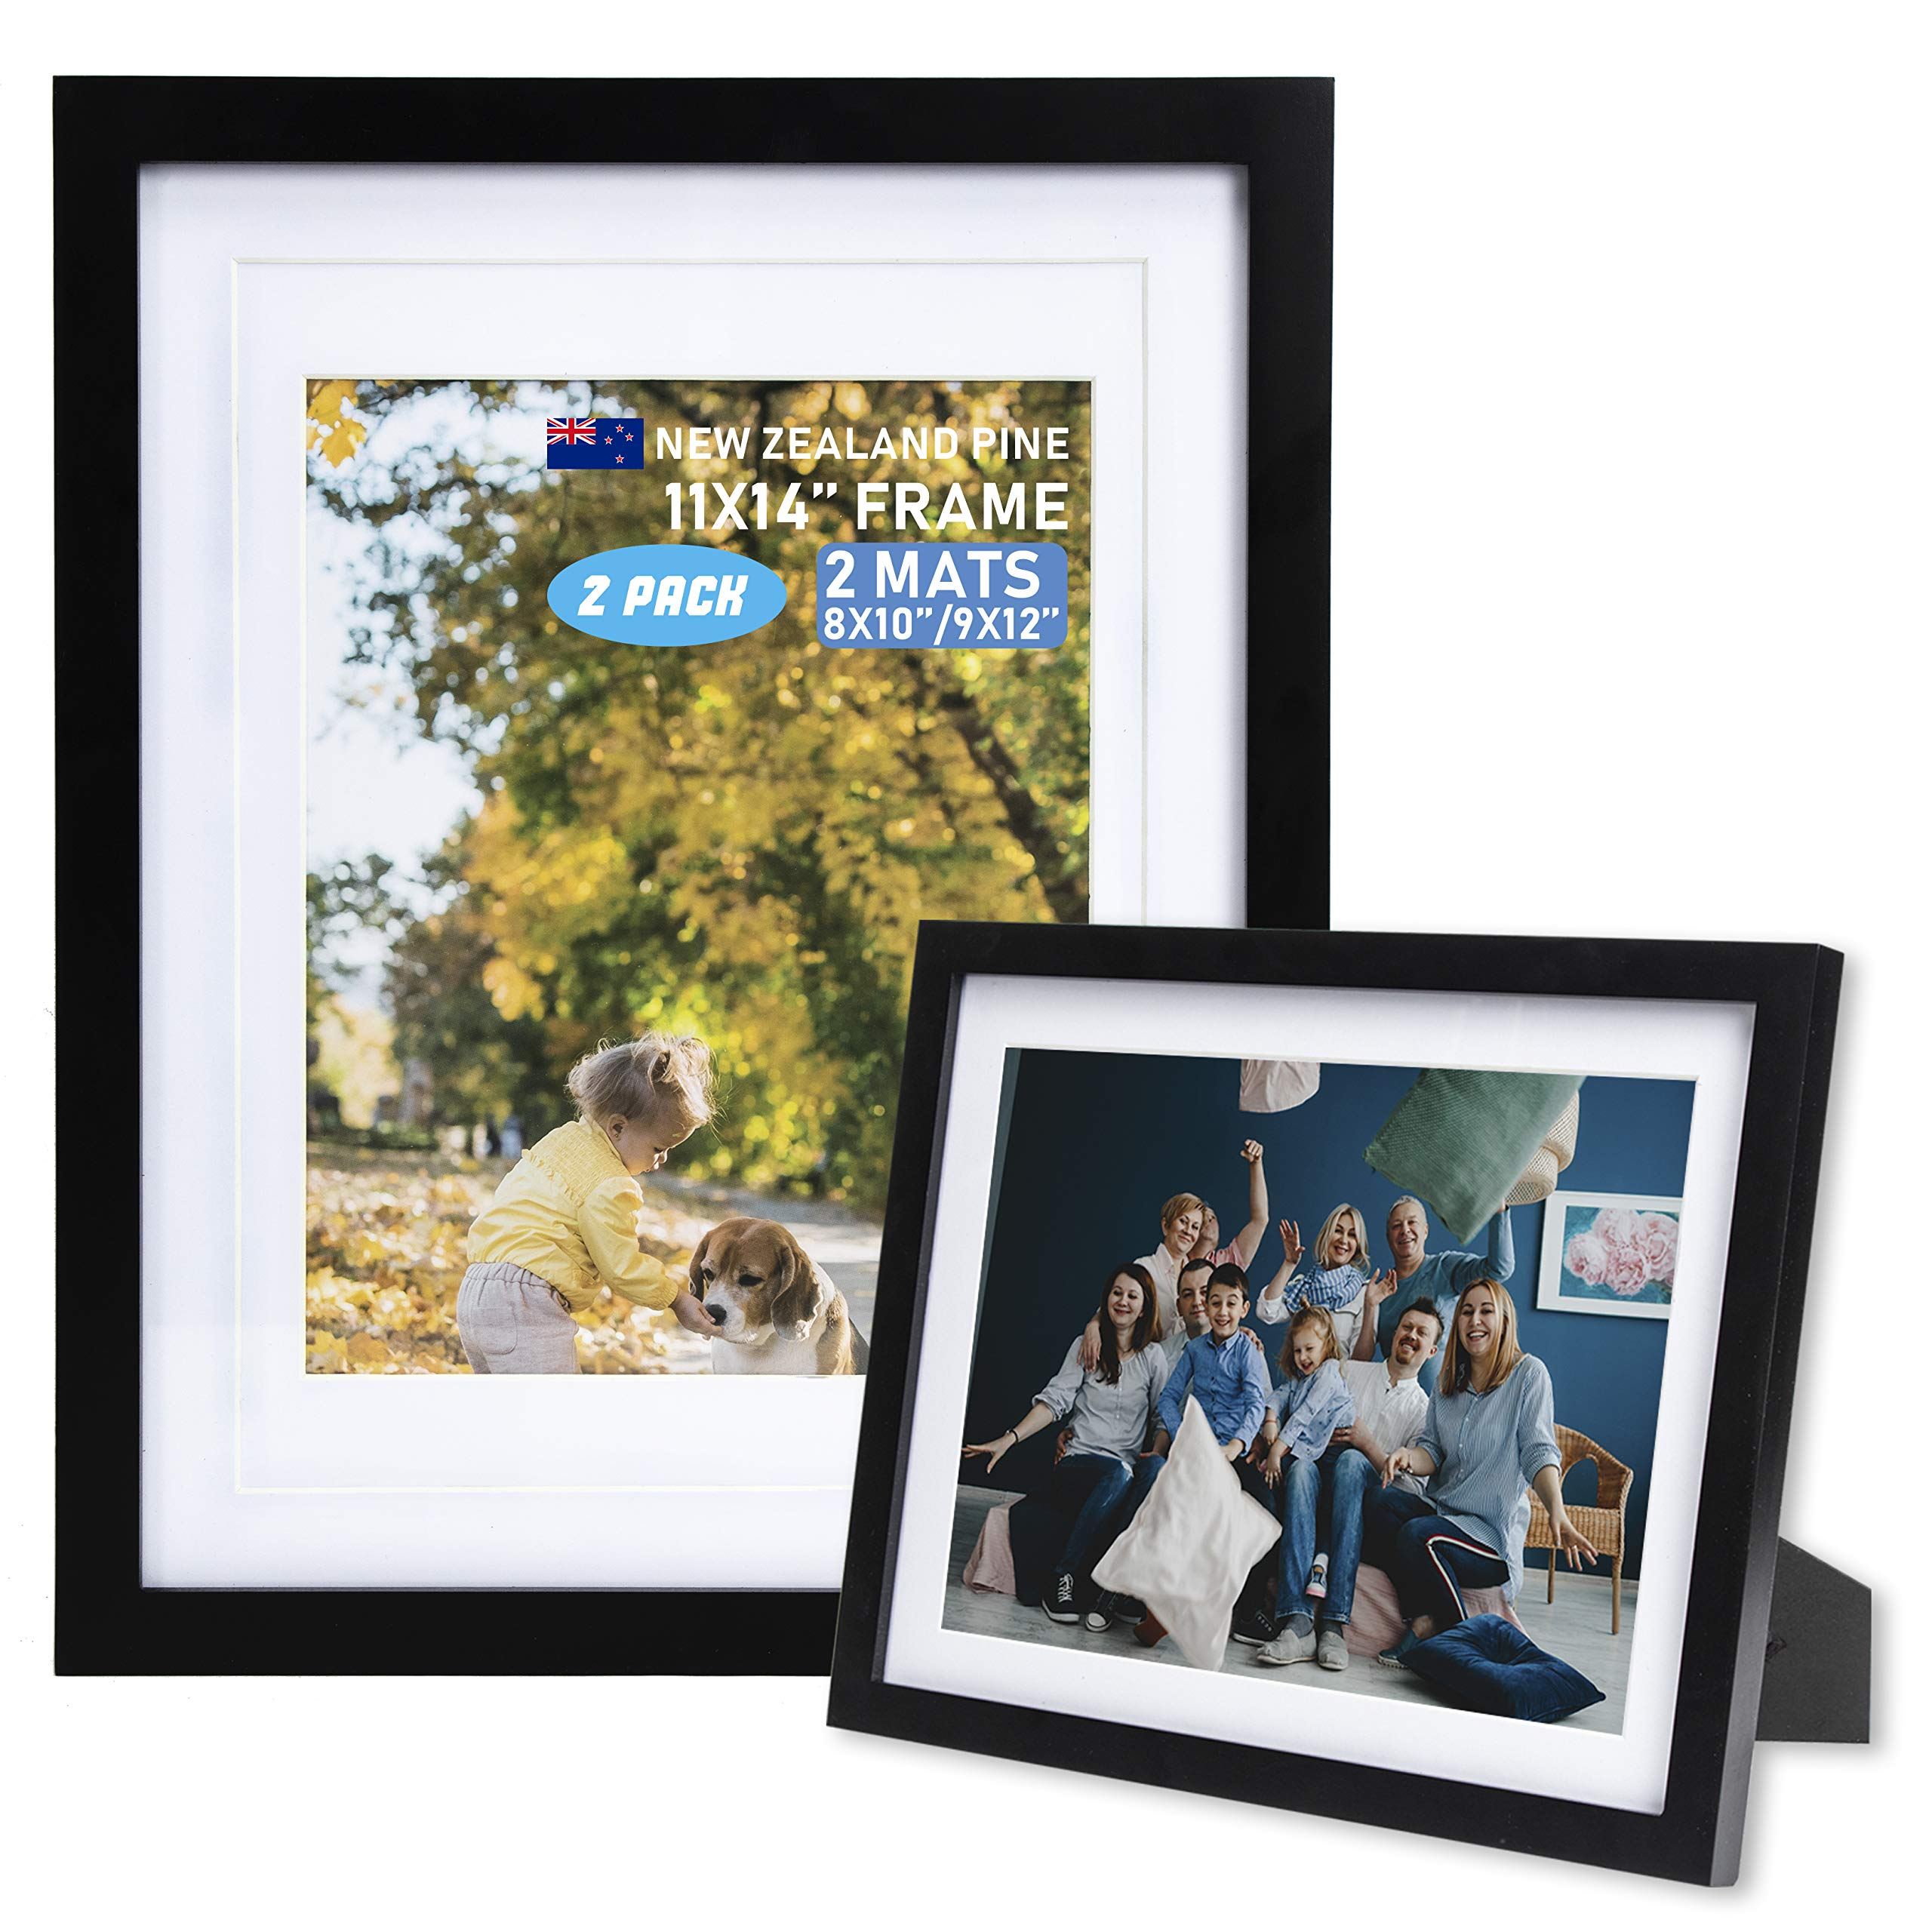 Beyond Your Thoughts Wood + Real Glass (Hang/Stand) 11X14 Black Picture Photo Frame with Matted for 8X10 or 9x12 Photo for Wall and Table Top-Mounting Hardware Included(2 Pack)